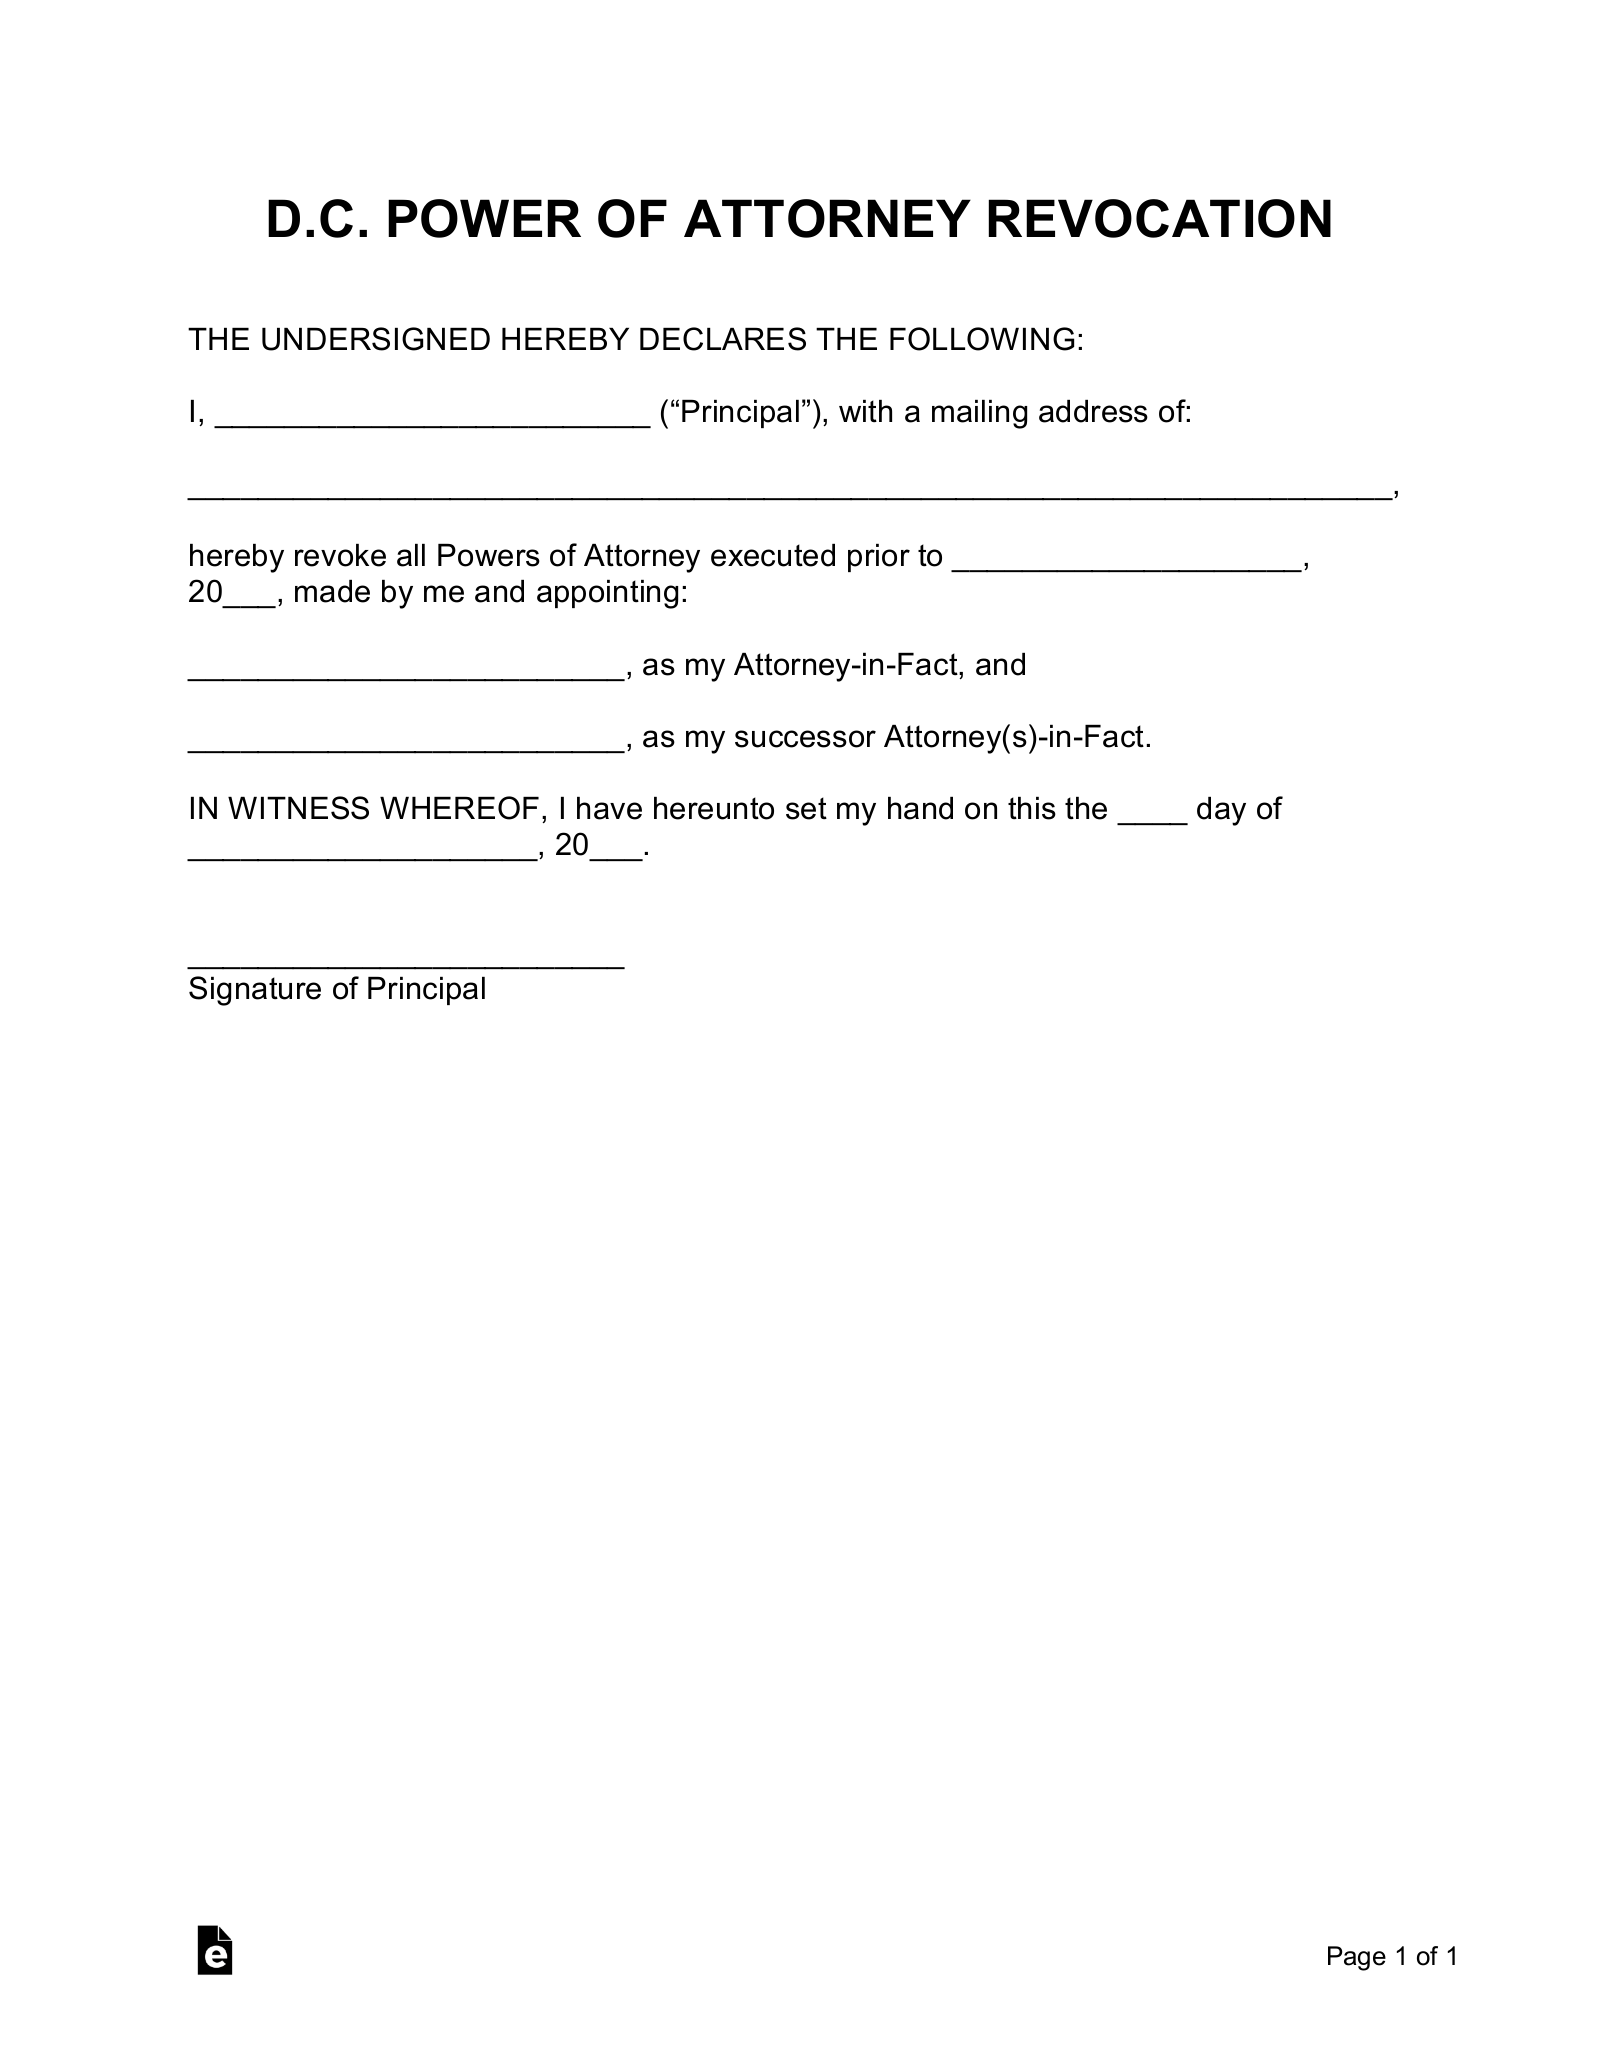 Free Washington D.C. Power of Attorney Revocation Form   Word ...